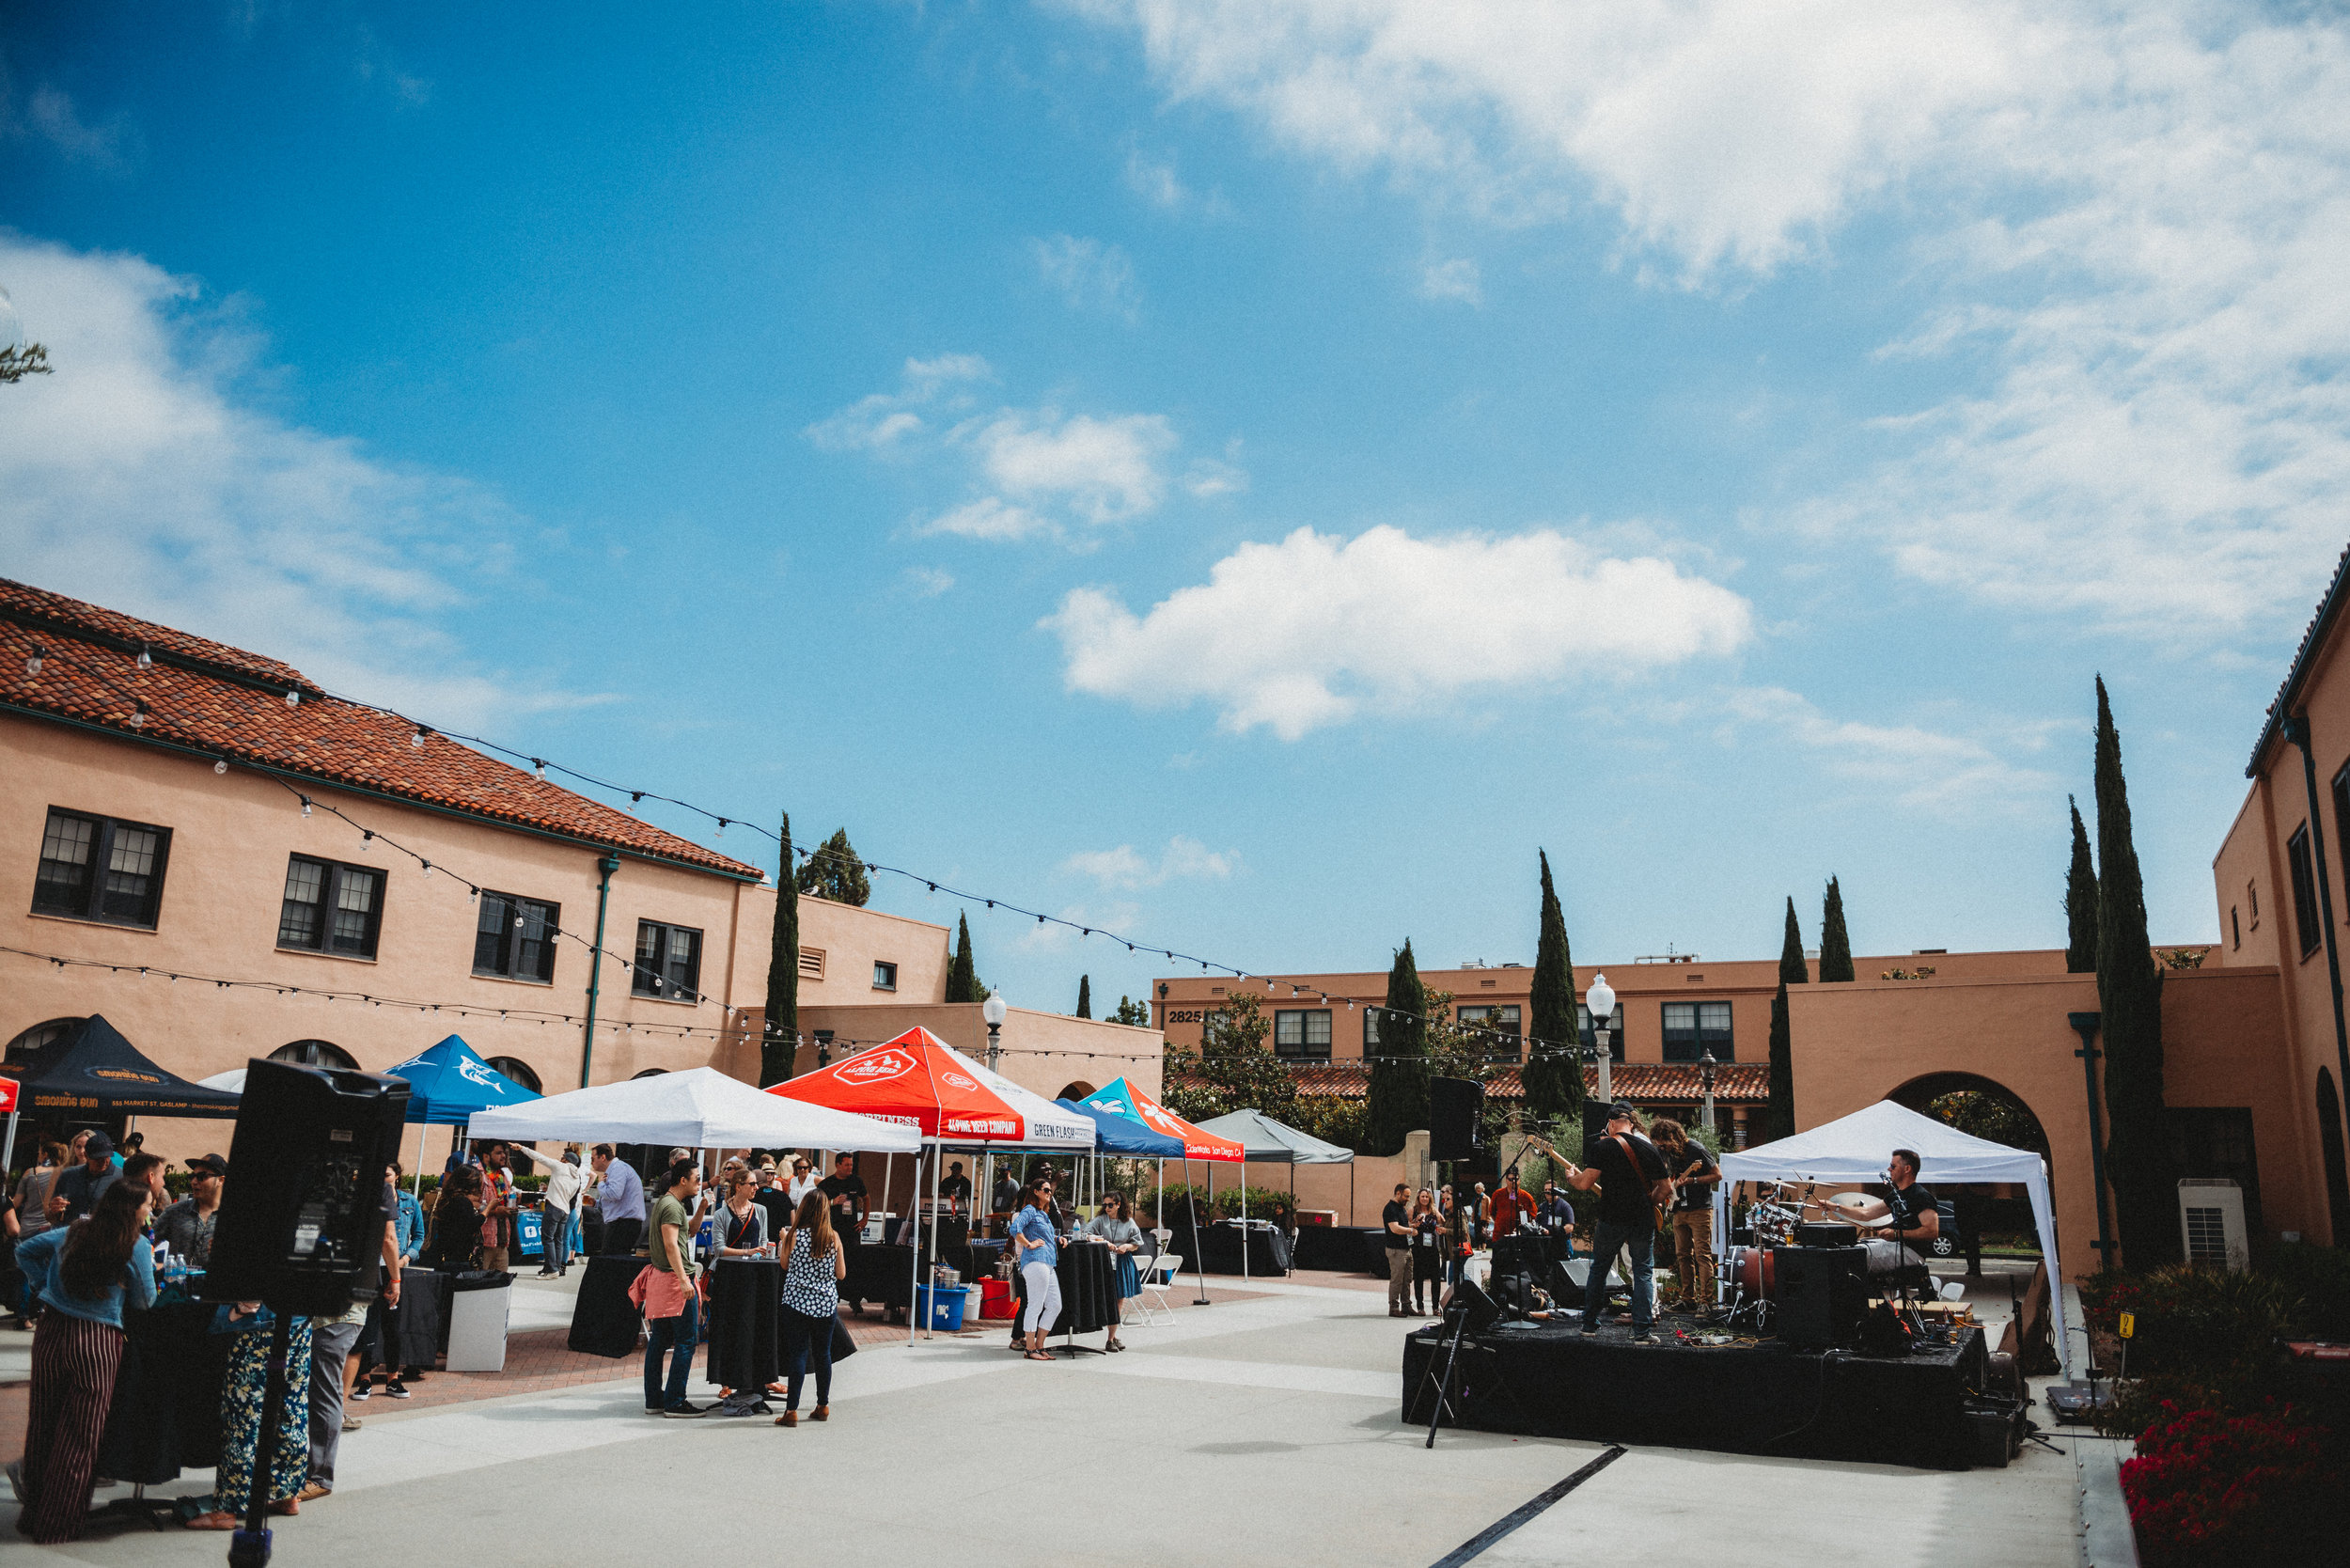 A big thanks to all the vendors and attendees who came out to support the  American Liver Foundation ! We had such a successful afternoon filled with laughter, music, food/beverages and a good time!